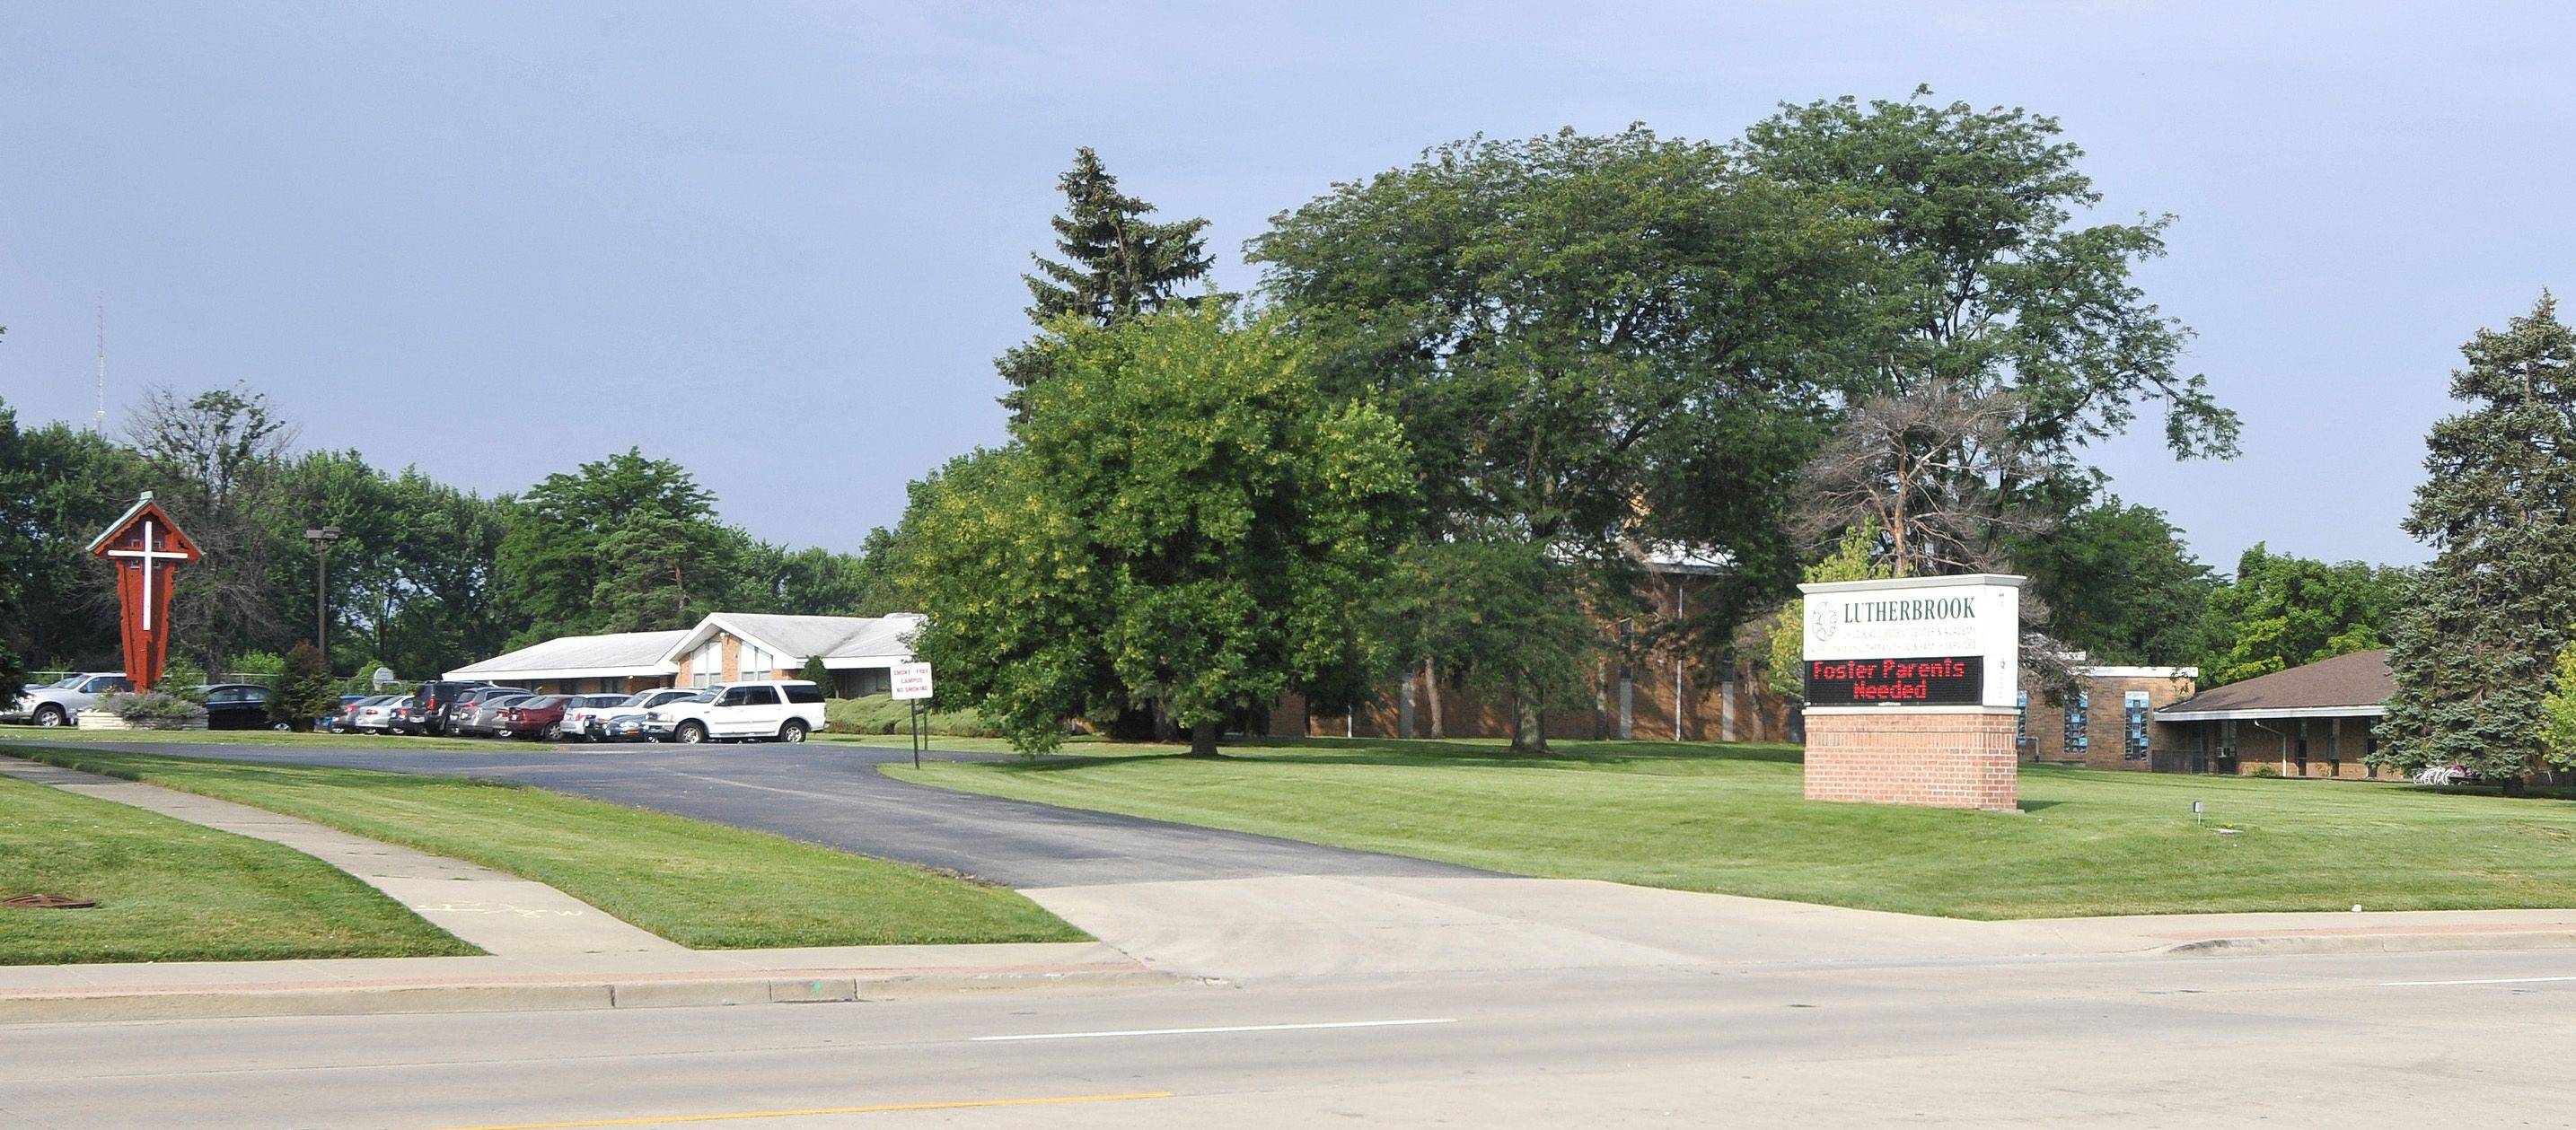 Lutherbrook residential facility in Addison, which treats traumatized children, was the site of 570 police calls in 2011 and 2012.